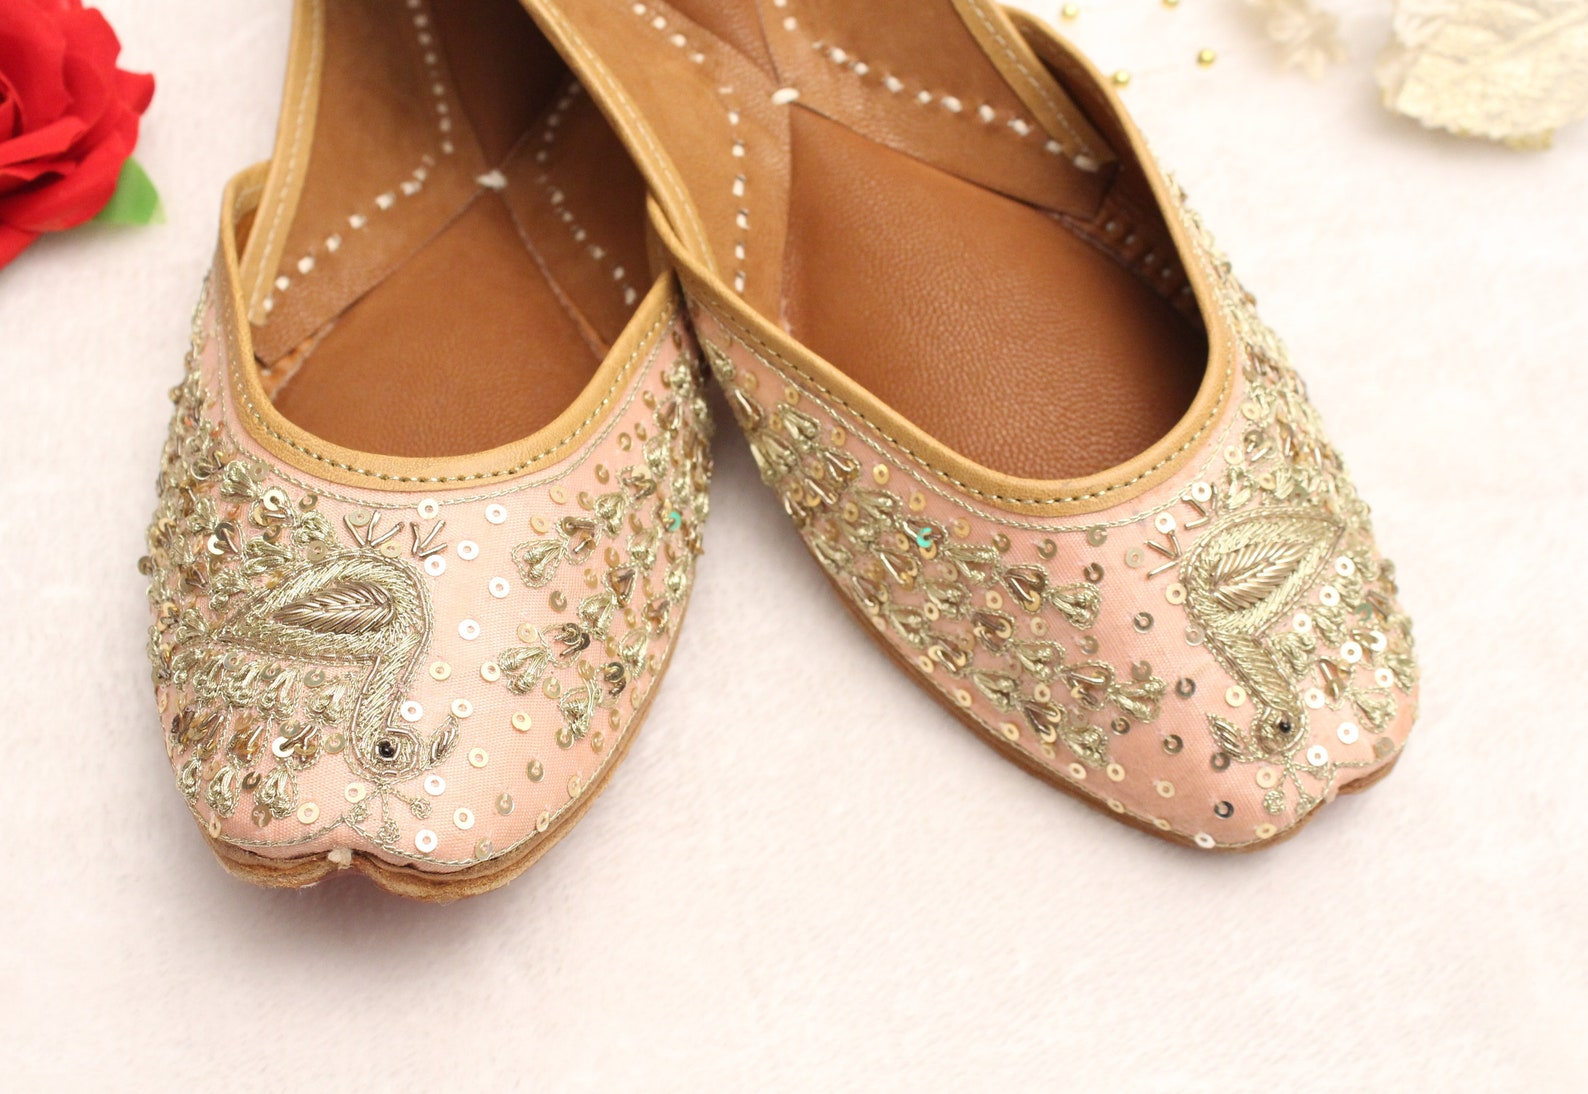 7f7067a89f4 Indian Bridal Wedding Shoes peacock Women Peach Lehnga Gold Jutti Shoes   Wedding Flats Ballet  khussa ...